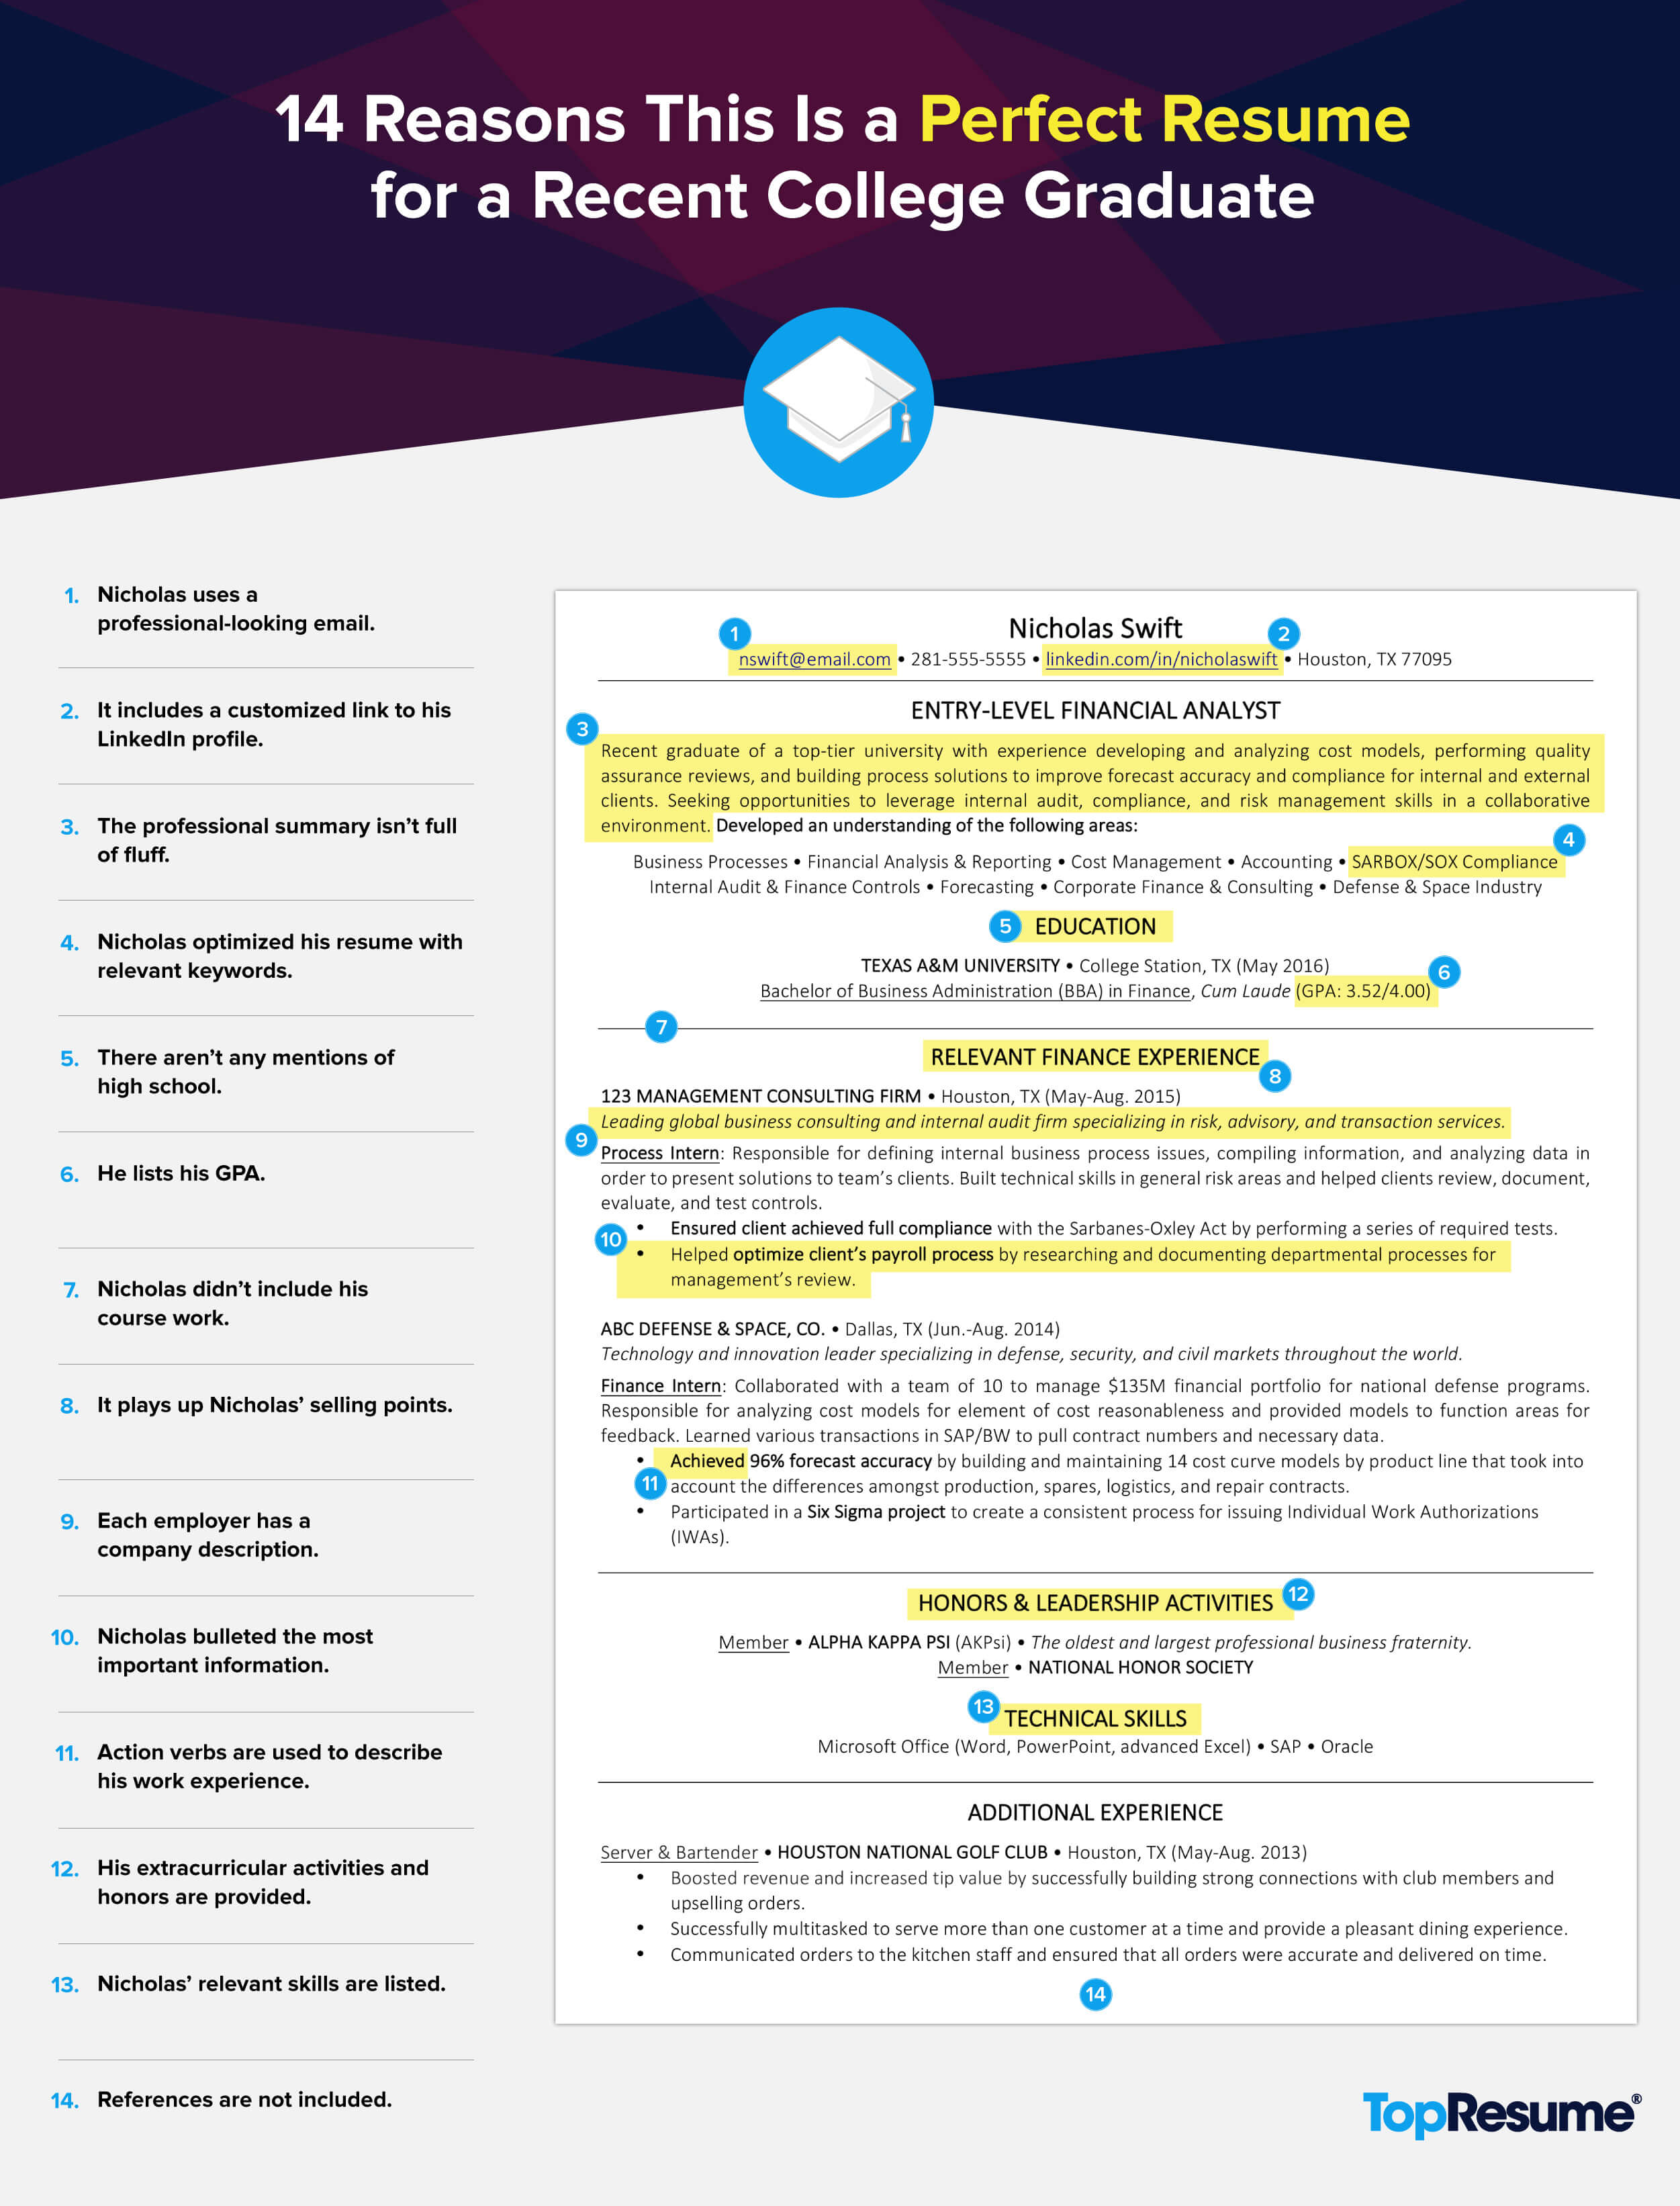 Perfect Job Resume 14 Reasons This Is A Perfect Recent College Graduate Resume